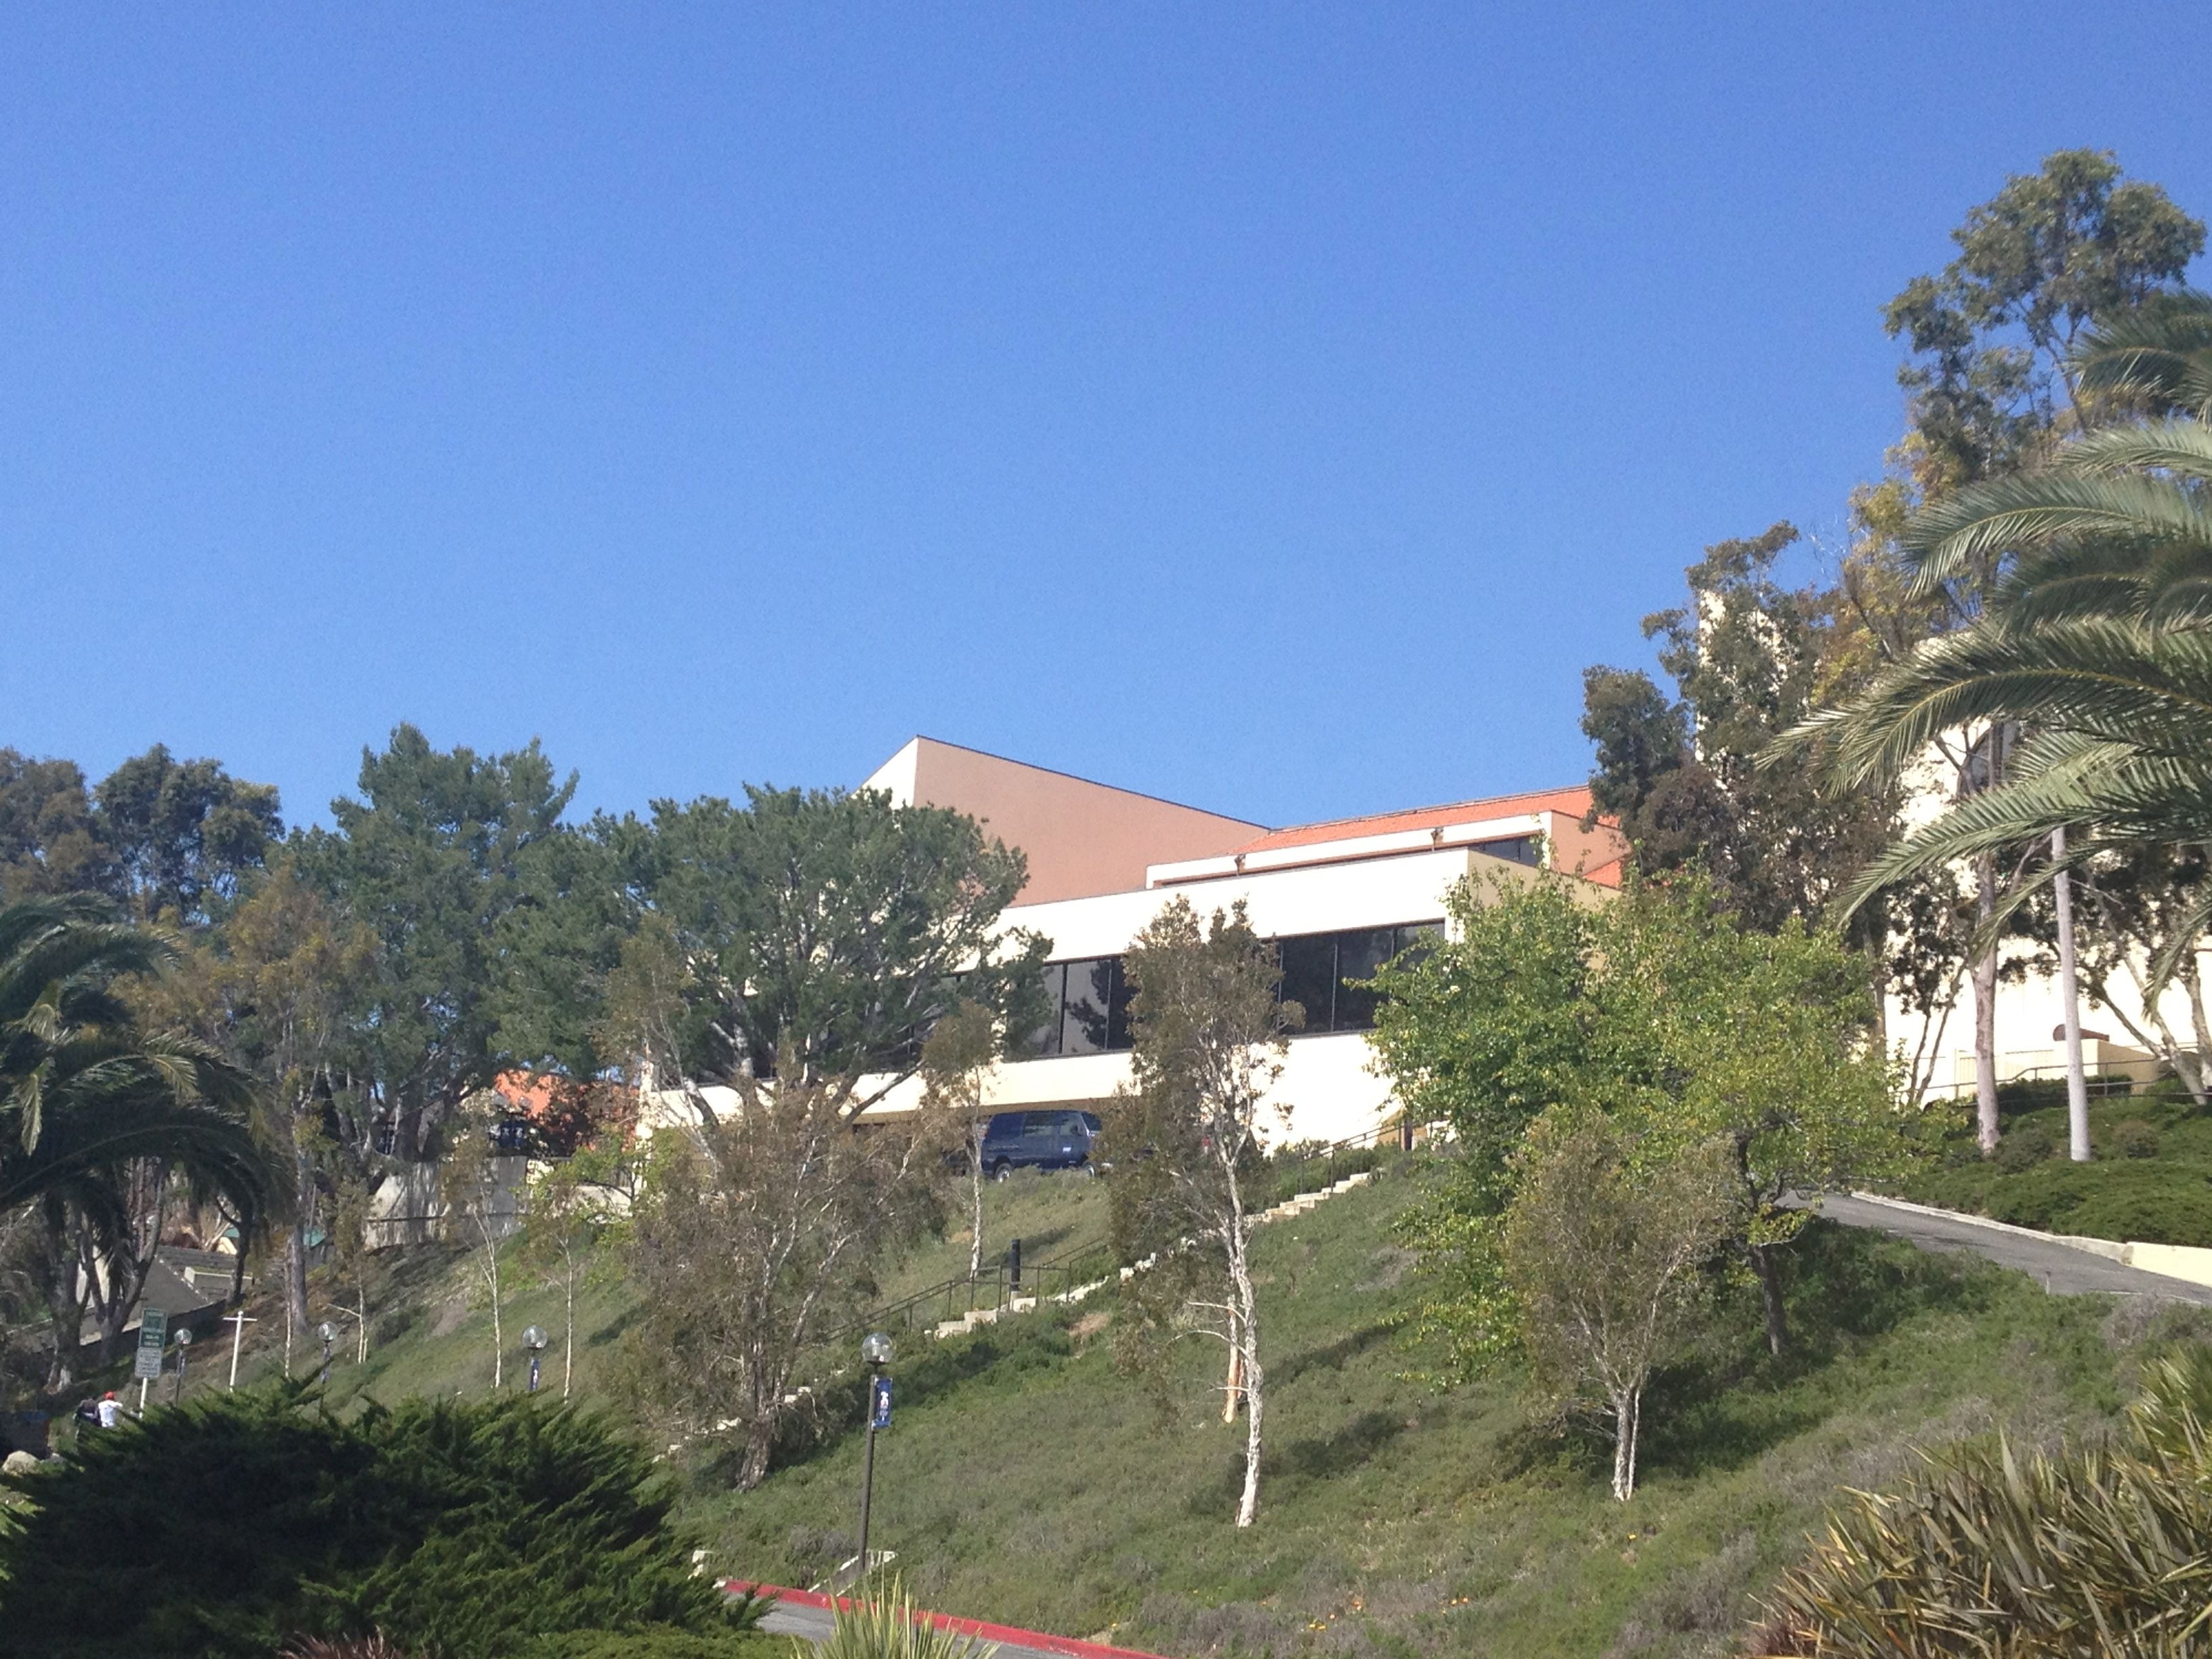 Pepperdine University Featured In Zoey 101 As Pca